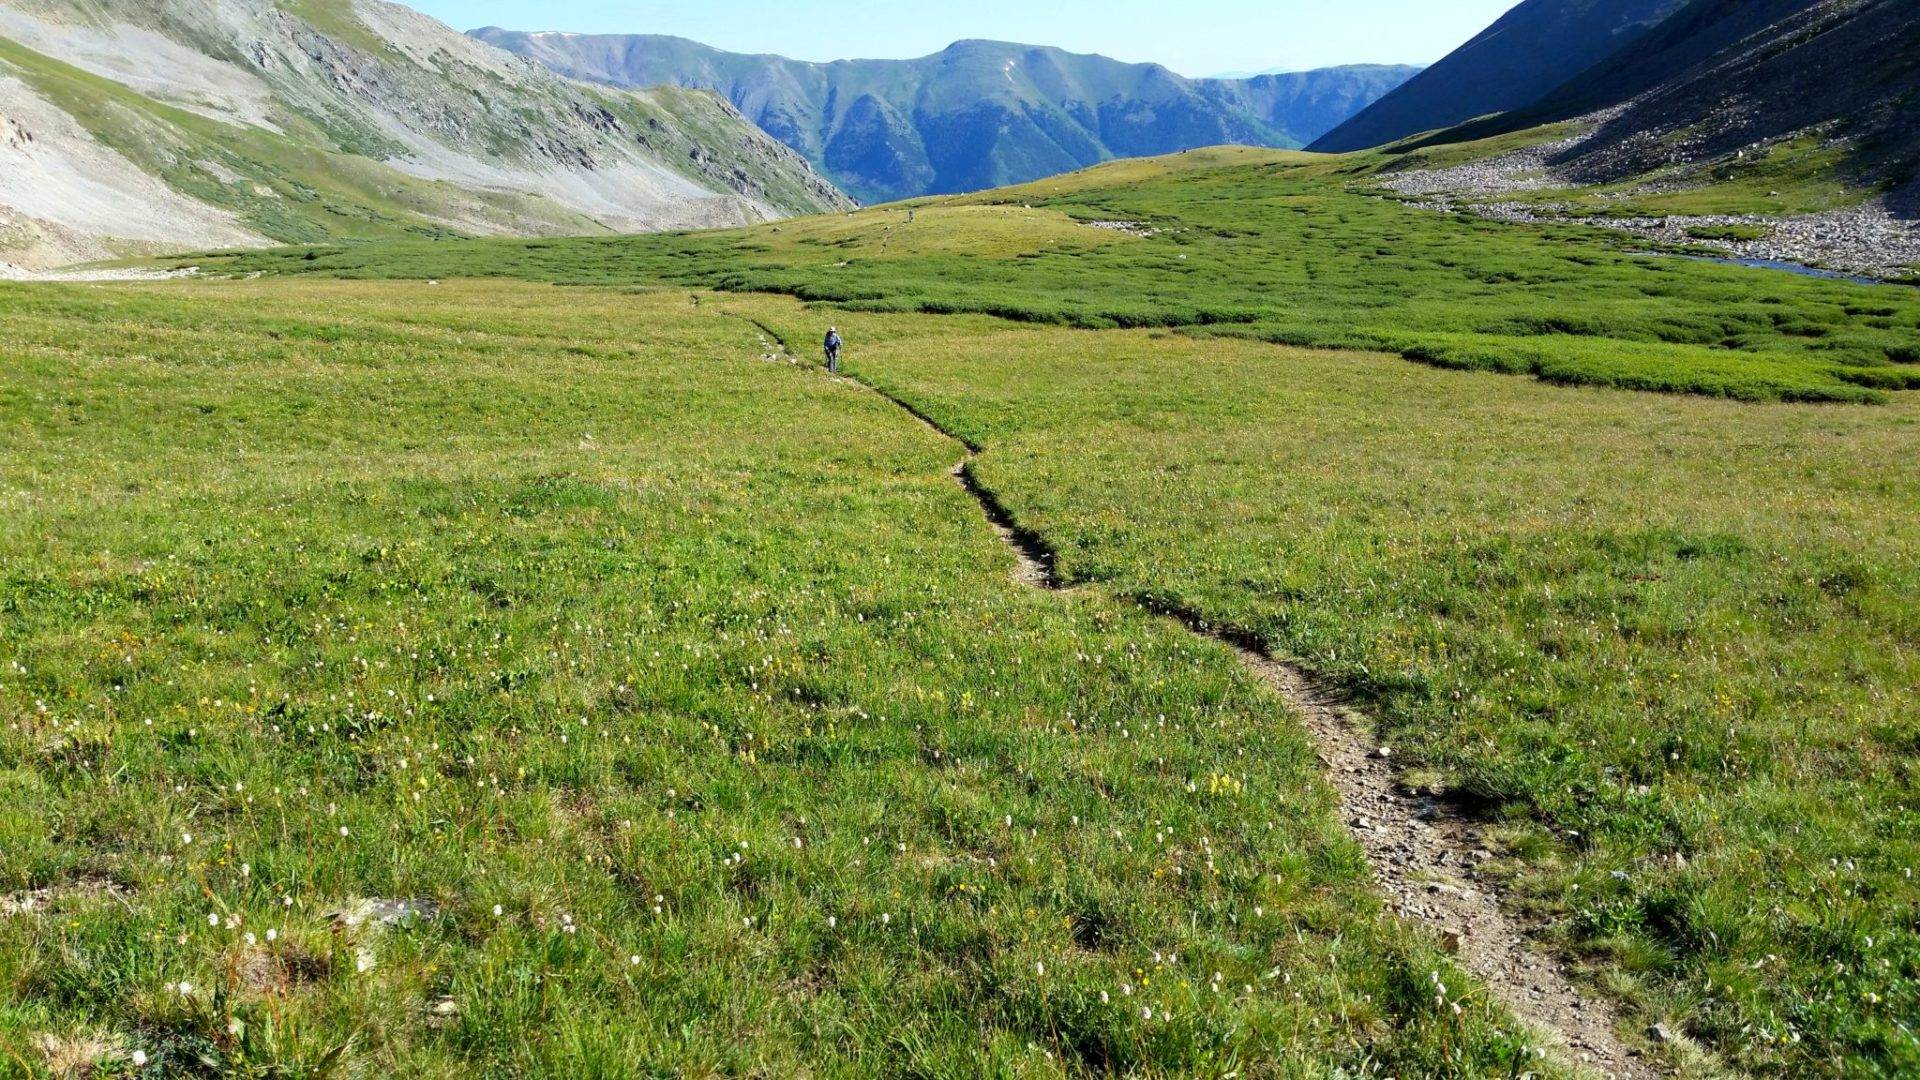 After a hard climb into the gulch, easier hiking for a while